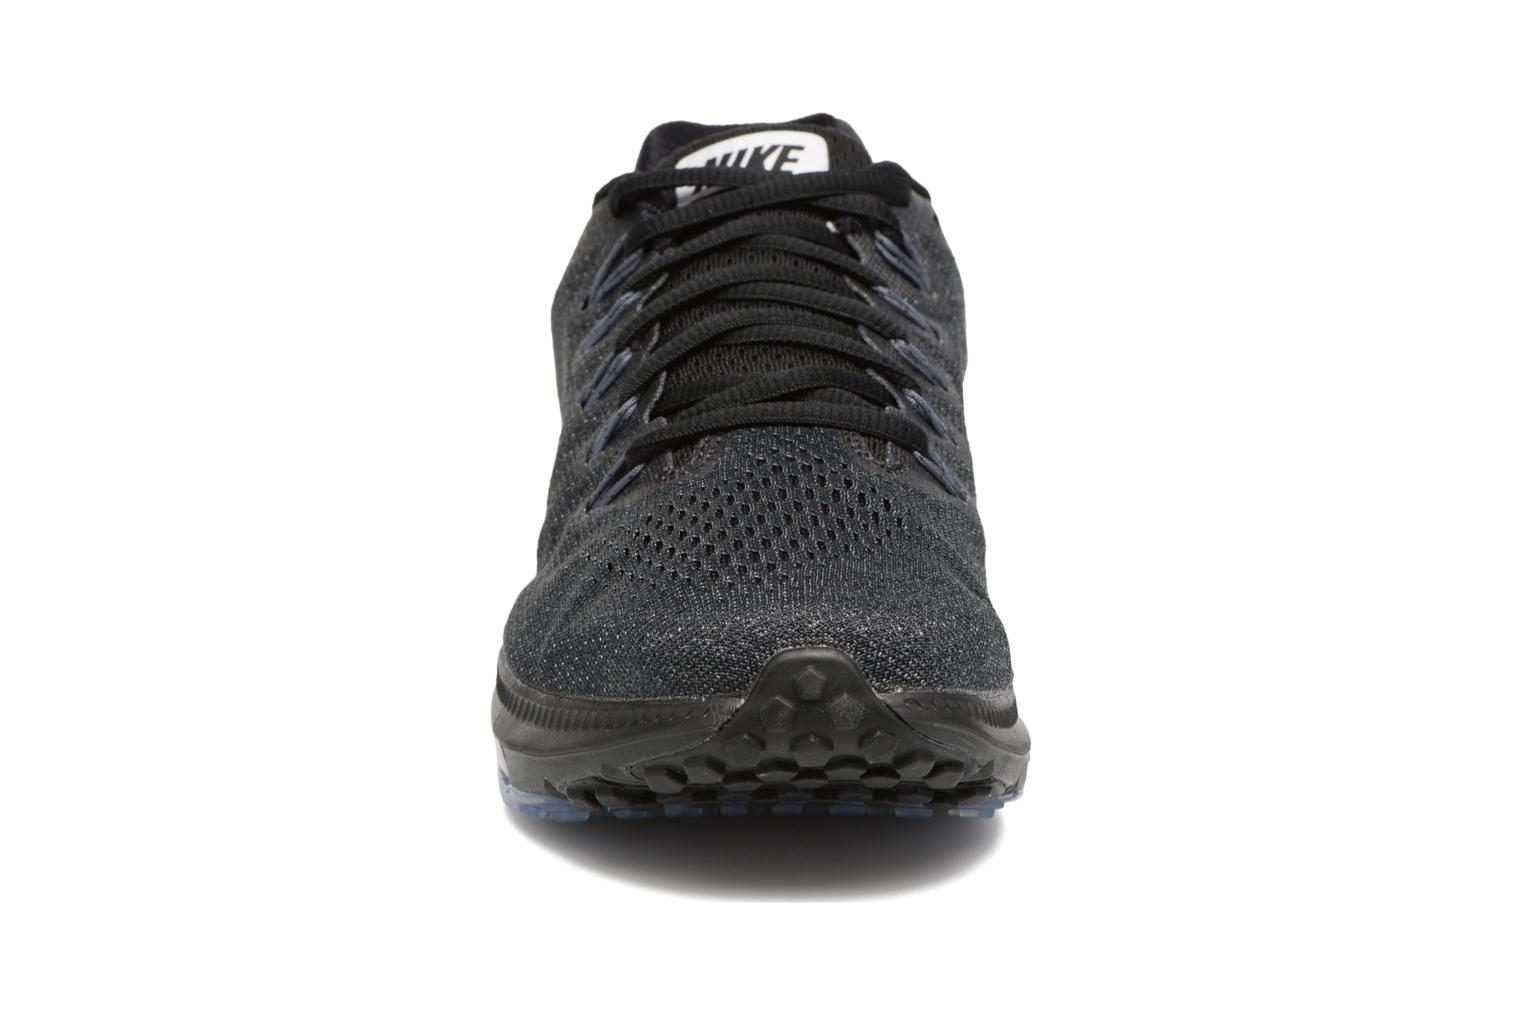 Nike Zoom All Out Low Black/Dark Grey-Anthracite-White